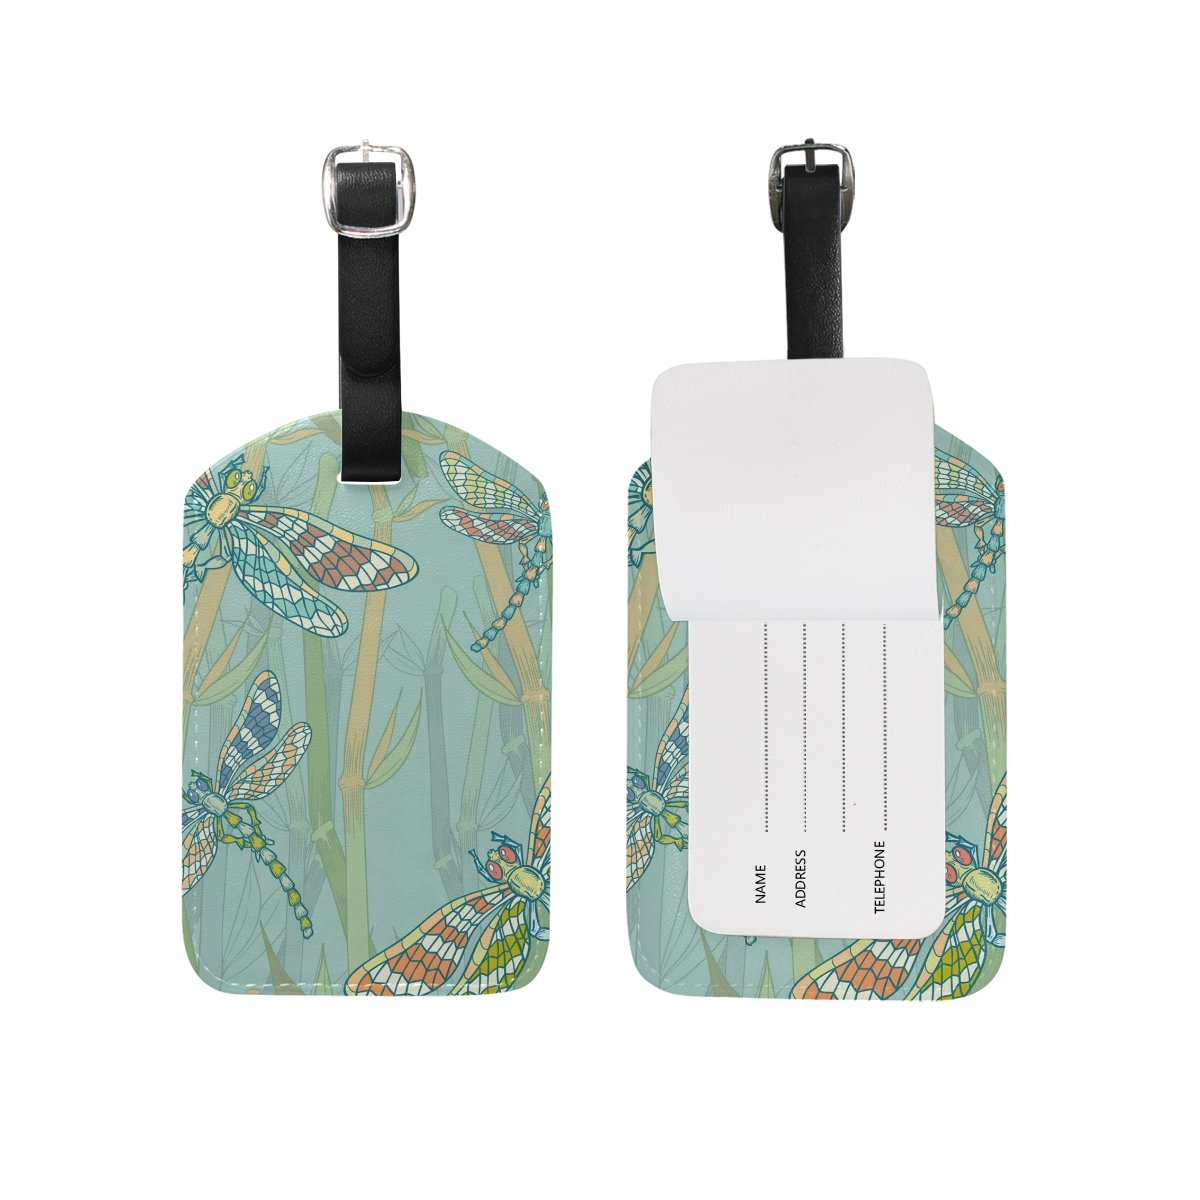 Luggage Tags PU Leather Tags Suitcase Labels Travel Bag With Privacy Cover Woodland Path Watercolor Creative Pattern Printing 2pcs